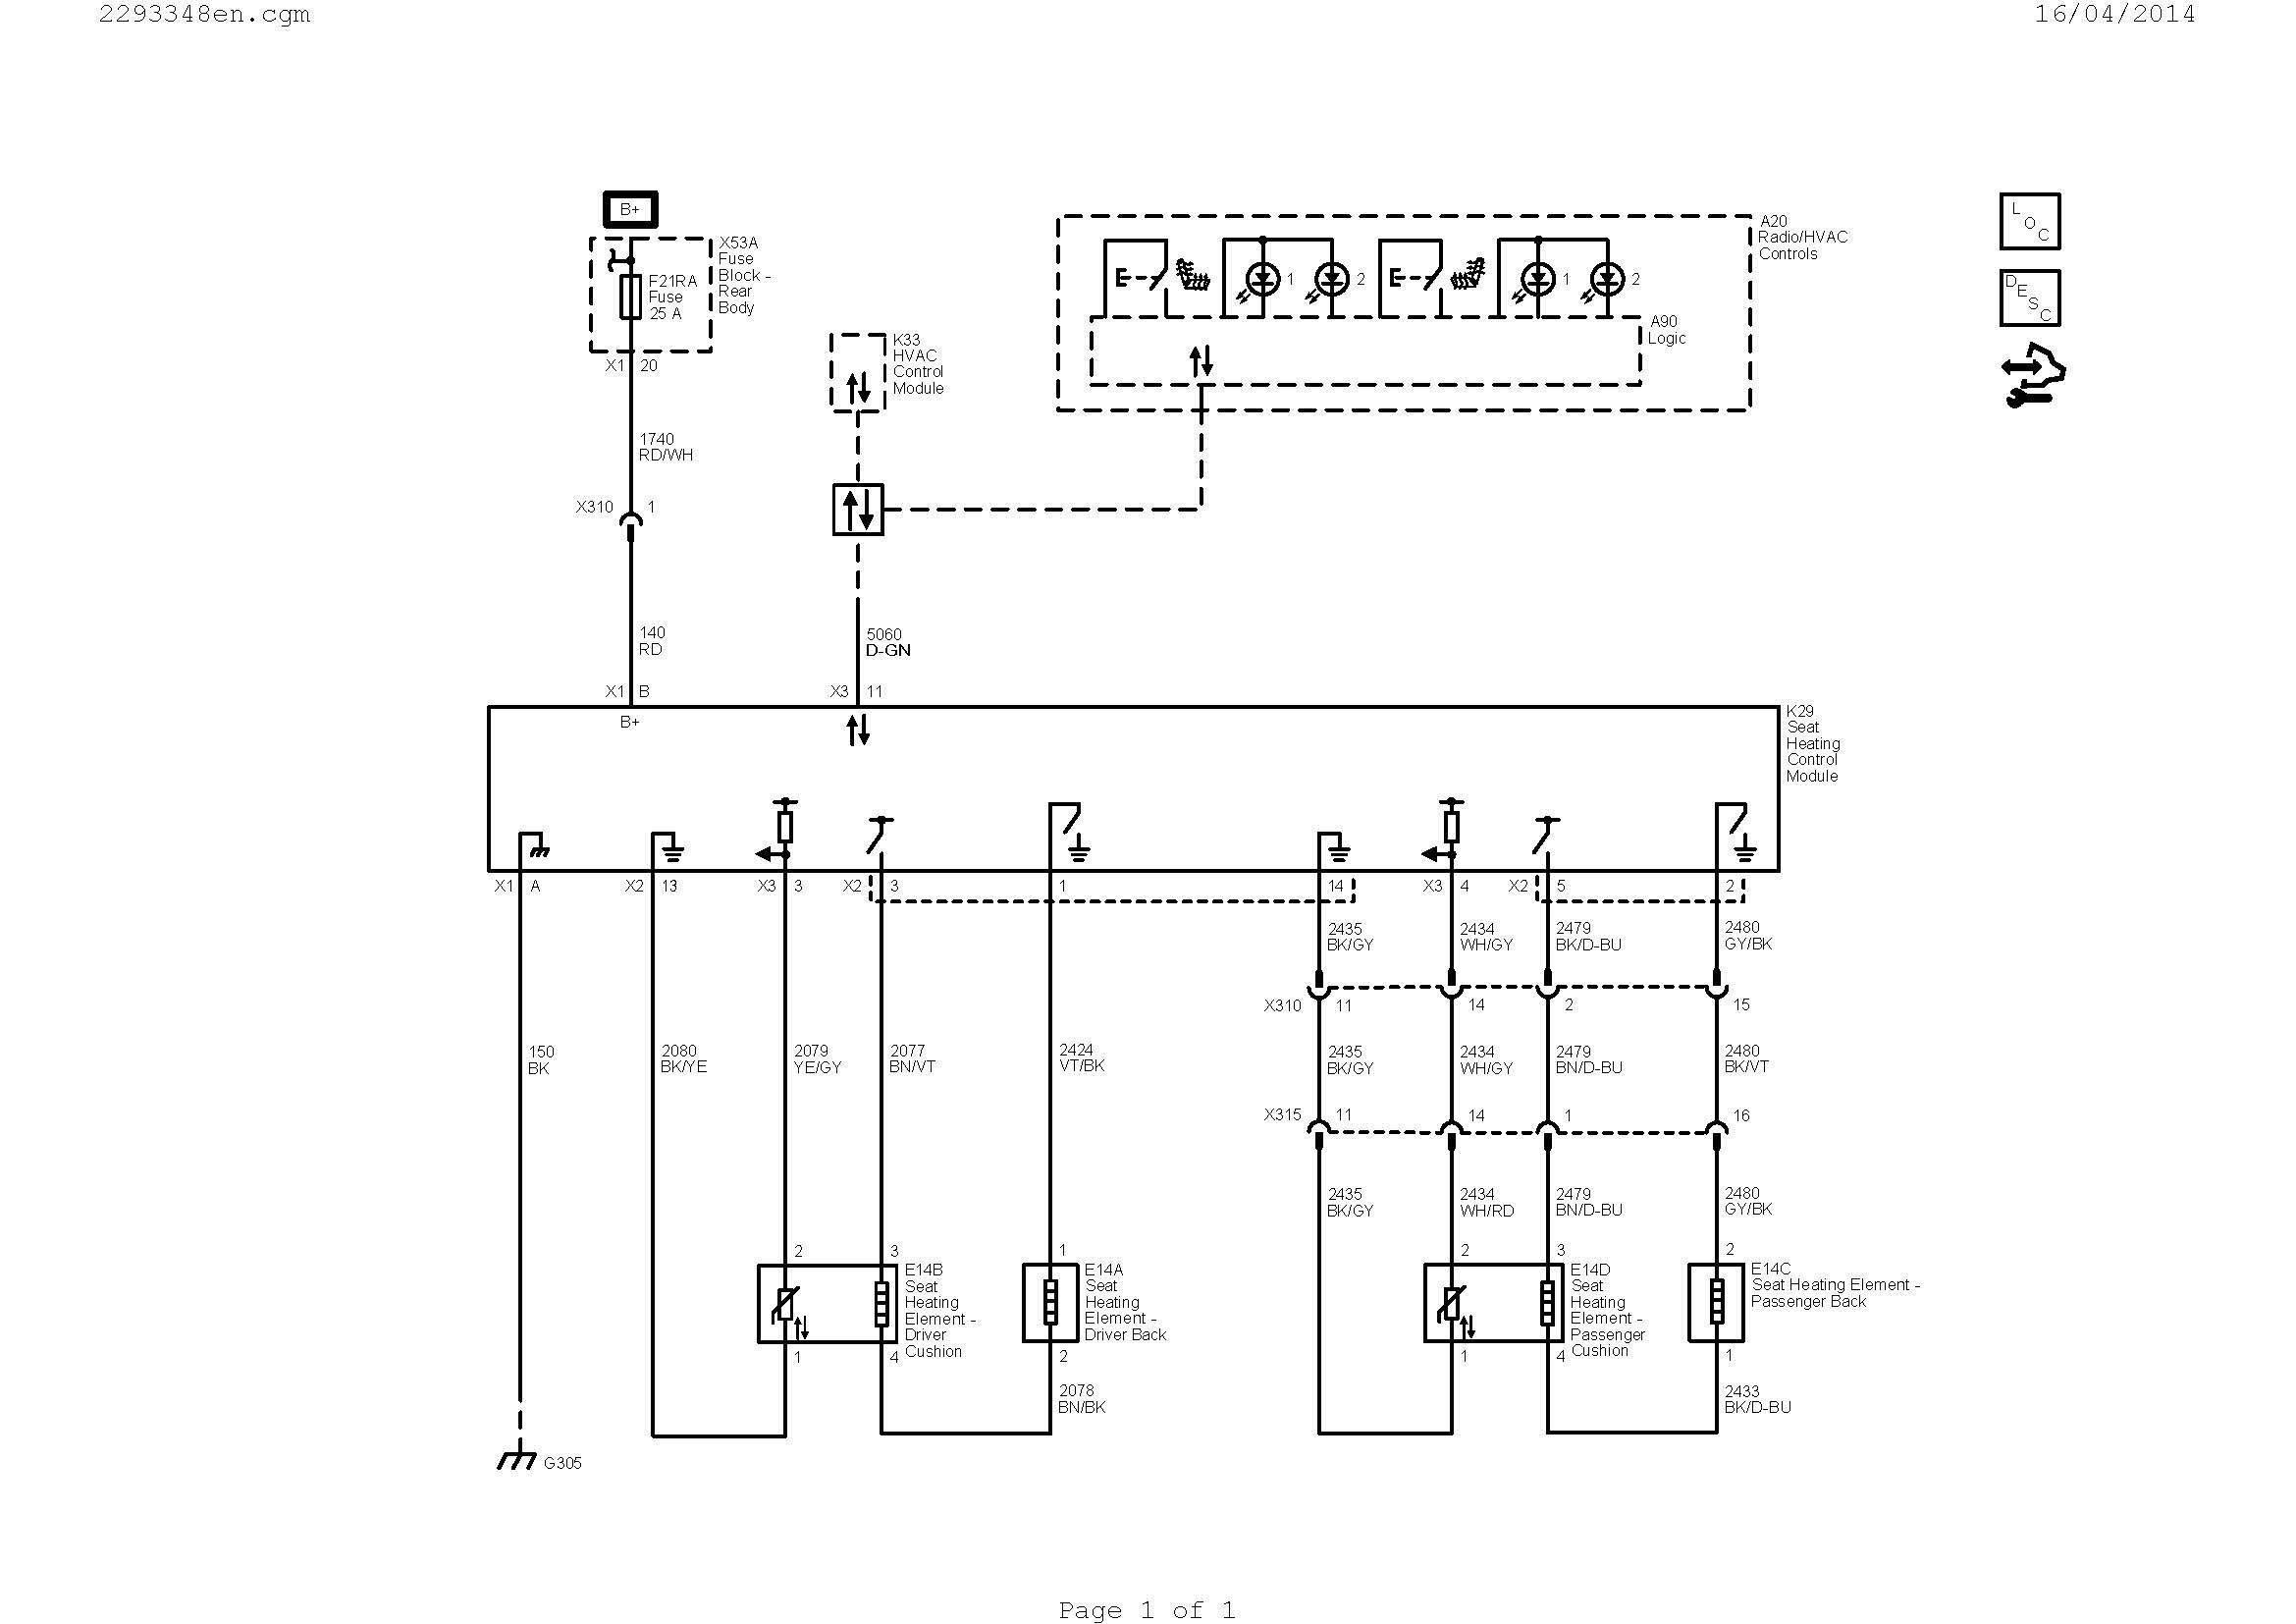 kidde sm120x wiring diagram Download-on on on switch wiring diagram Download Wiring Diagram For A Relay Switch Save Wiring DOWNLOAD Wiring Diagram 9-r